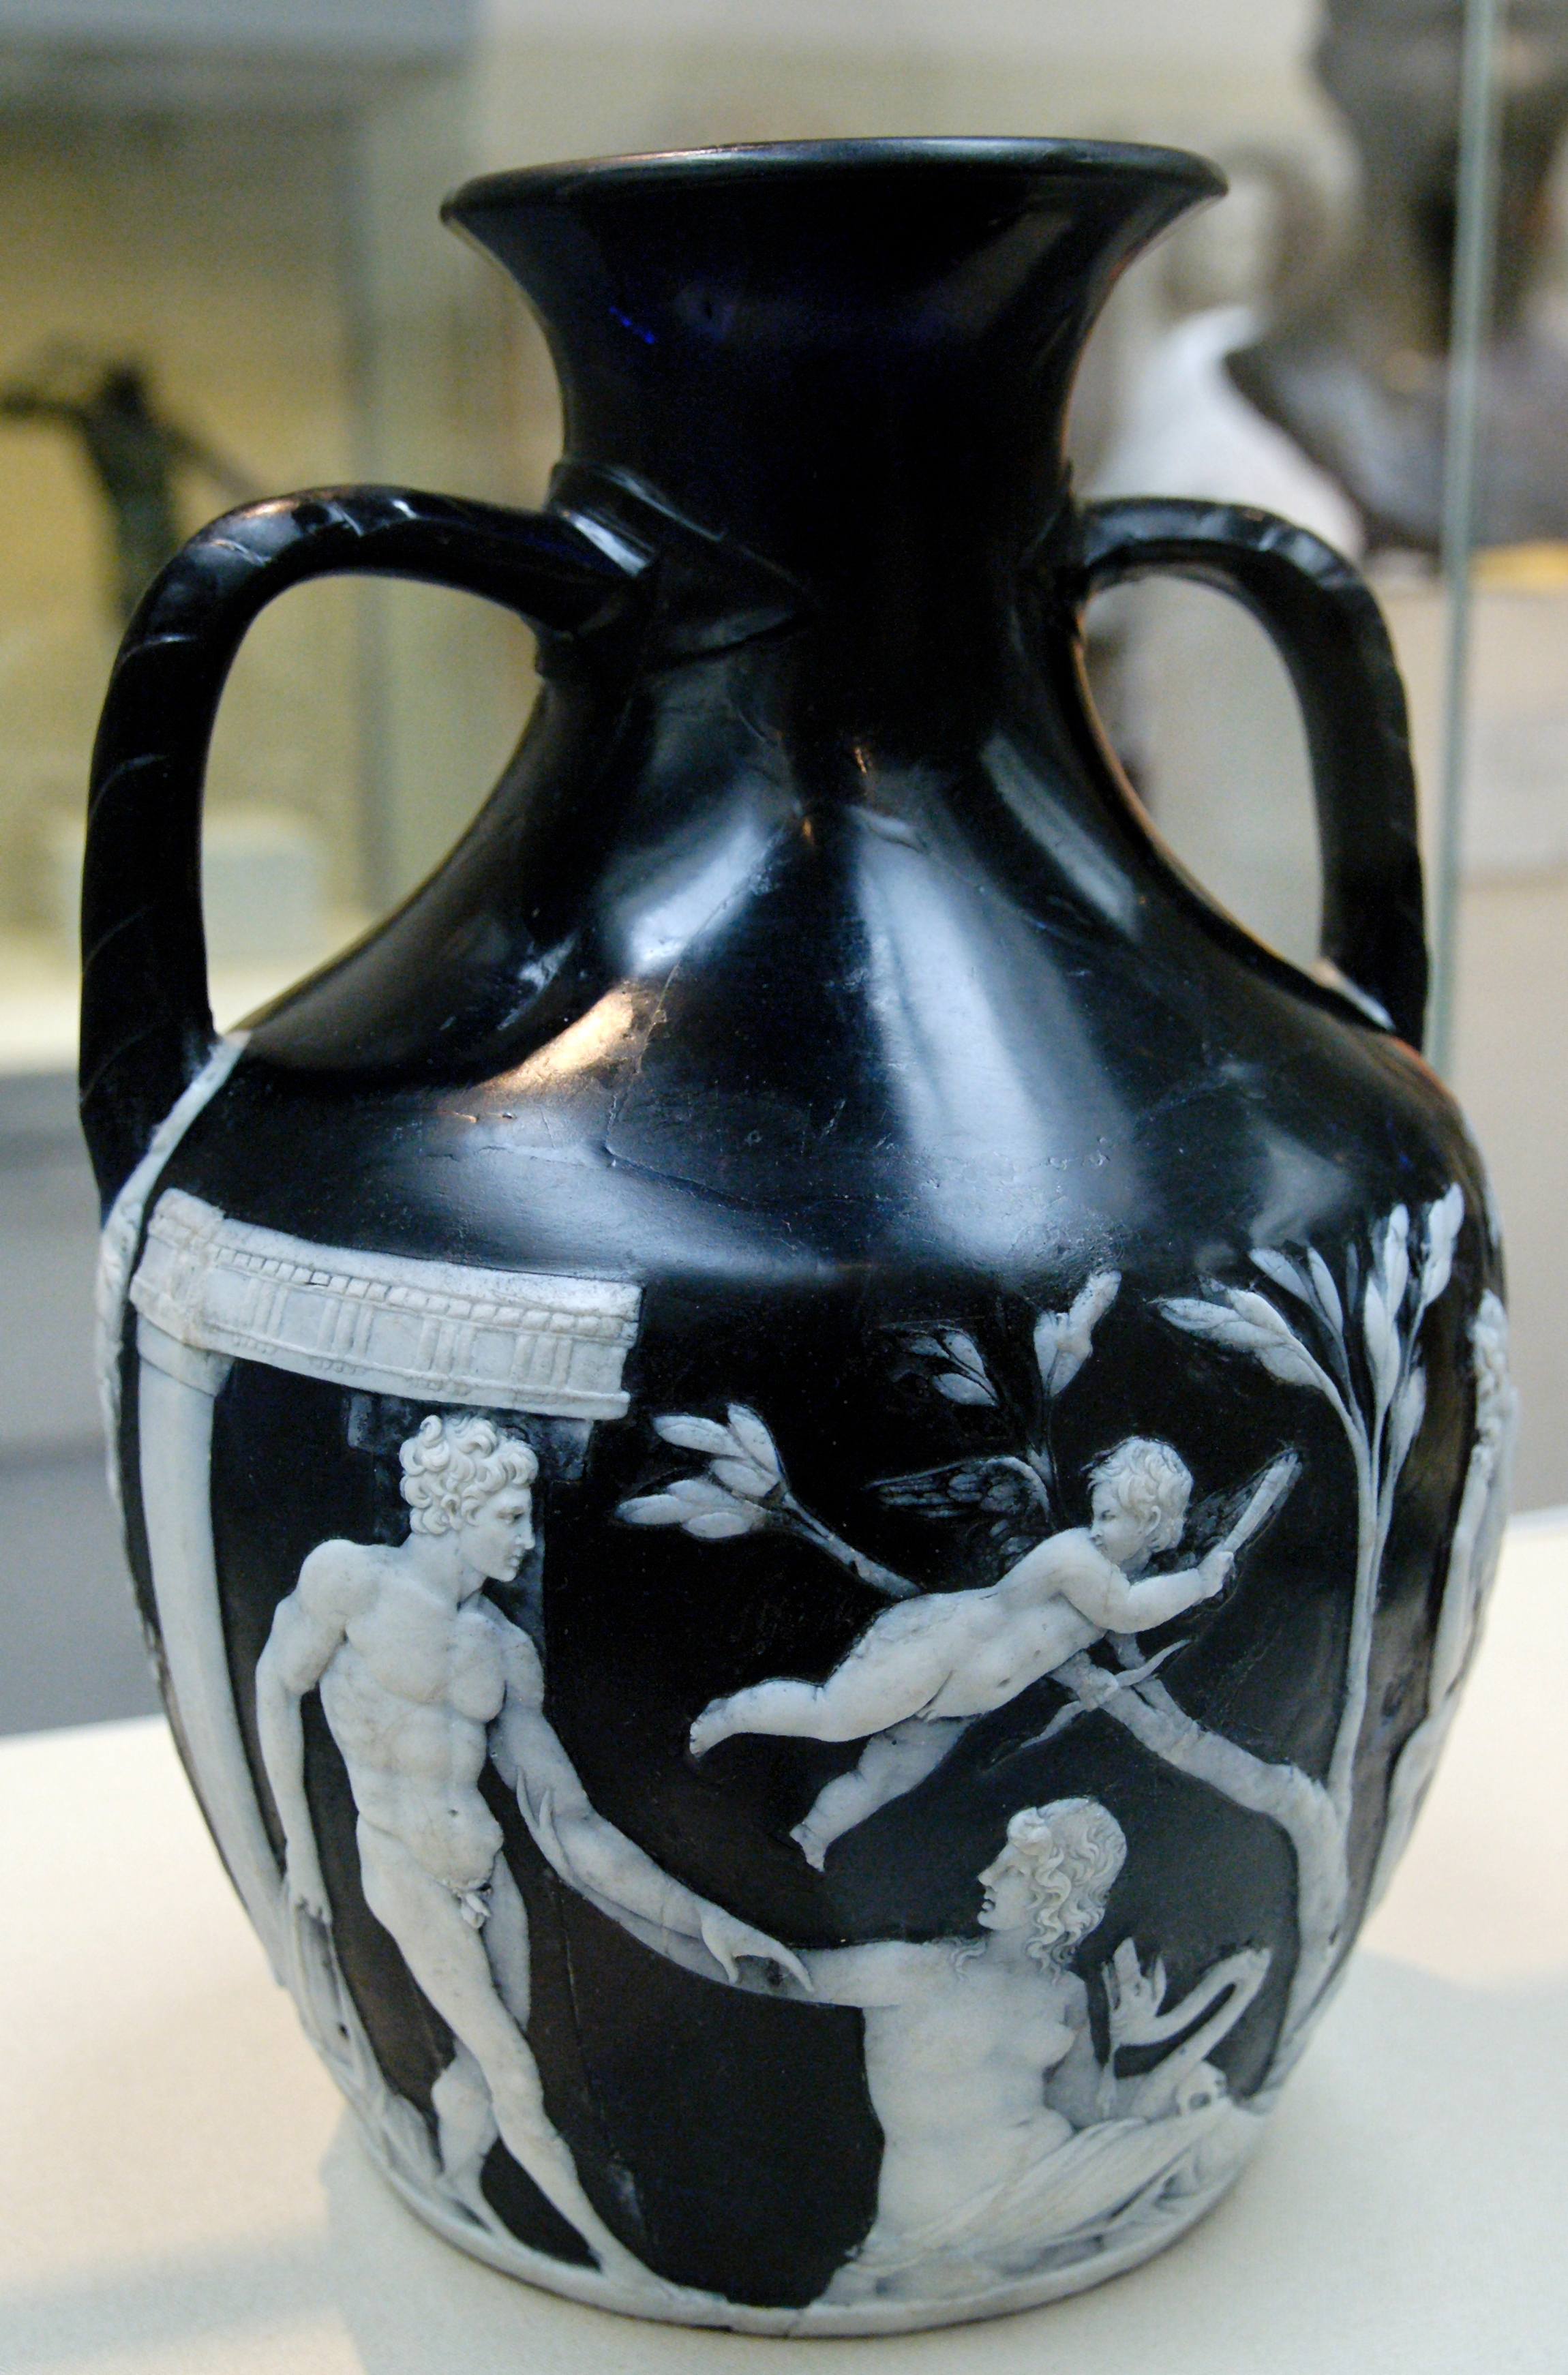 Imagery in Keats' 'Ode on a Grecian Urn'